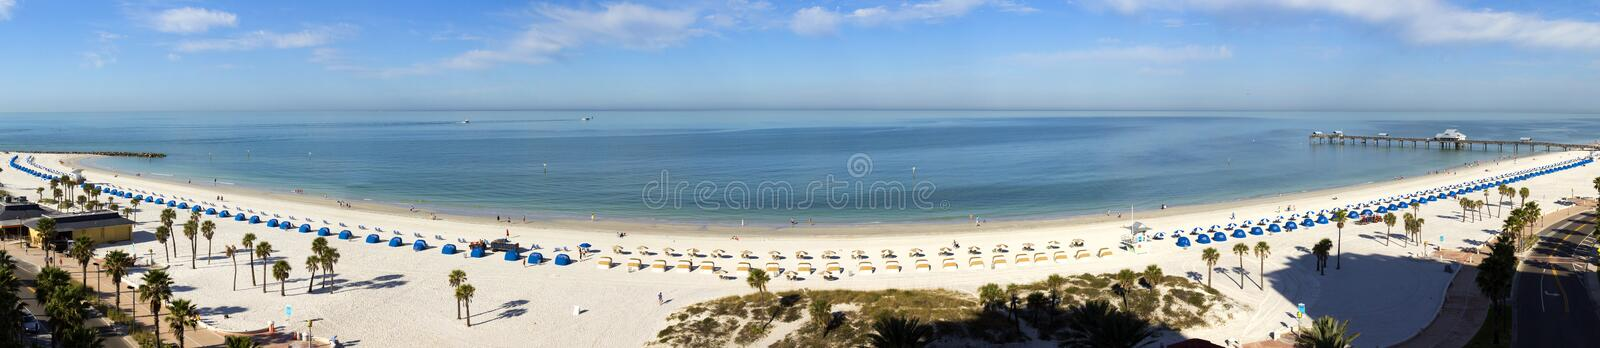 Wide Panoramic View of Clearwater Beach Resort in Florida stock image